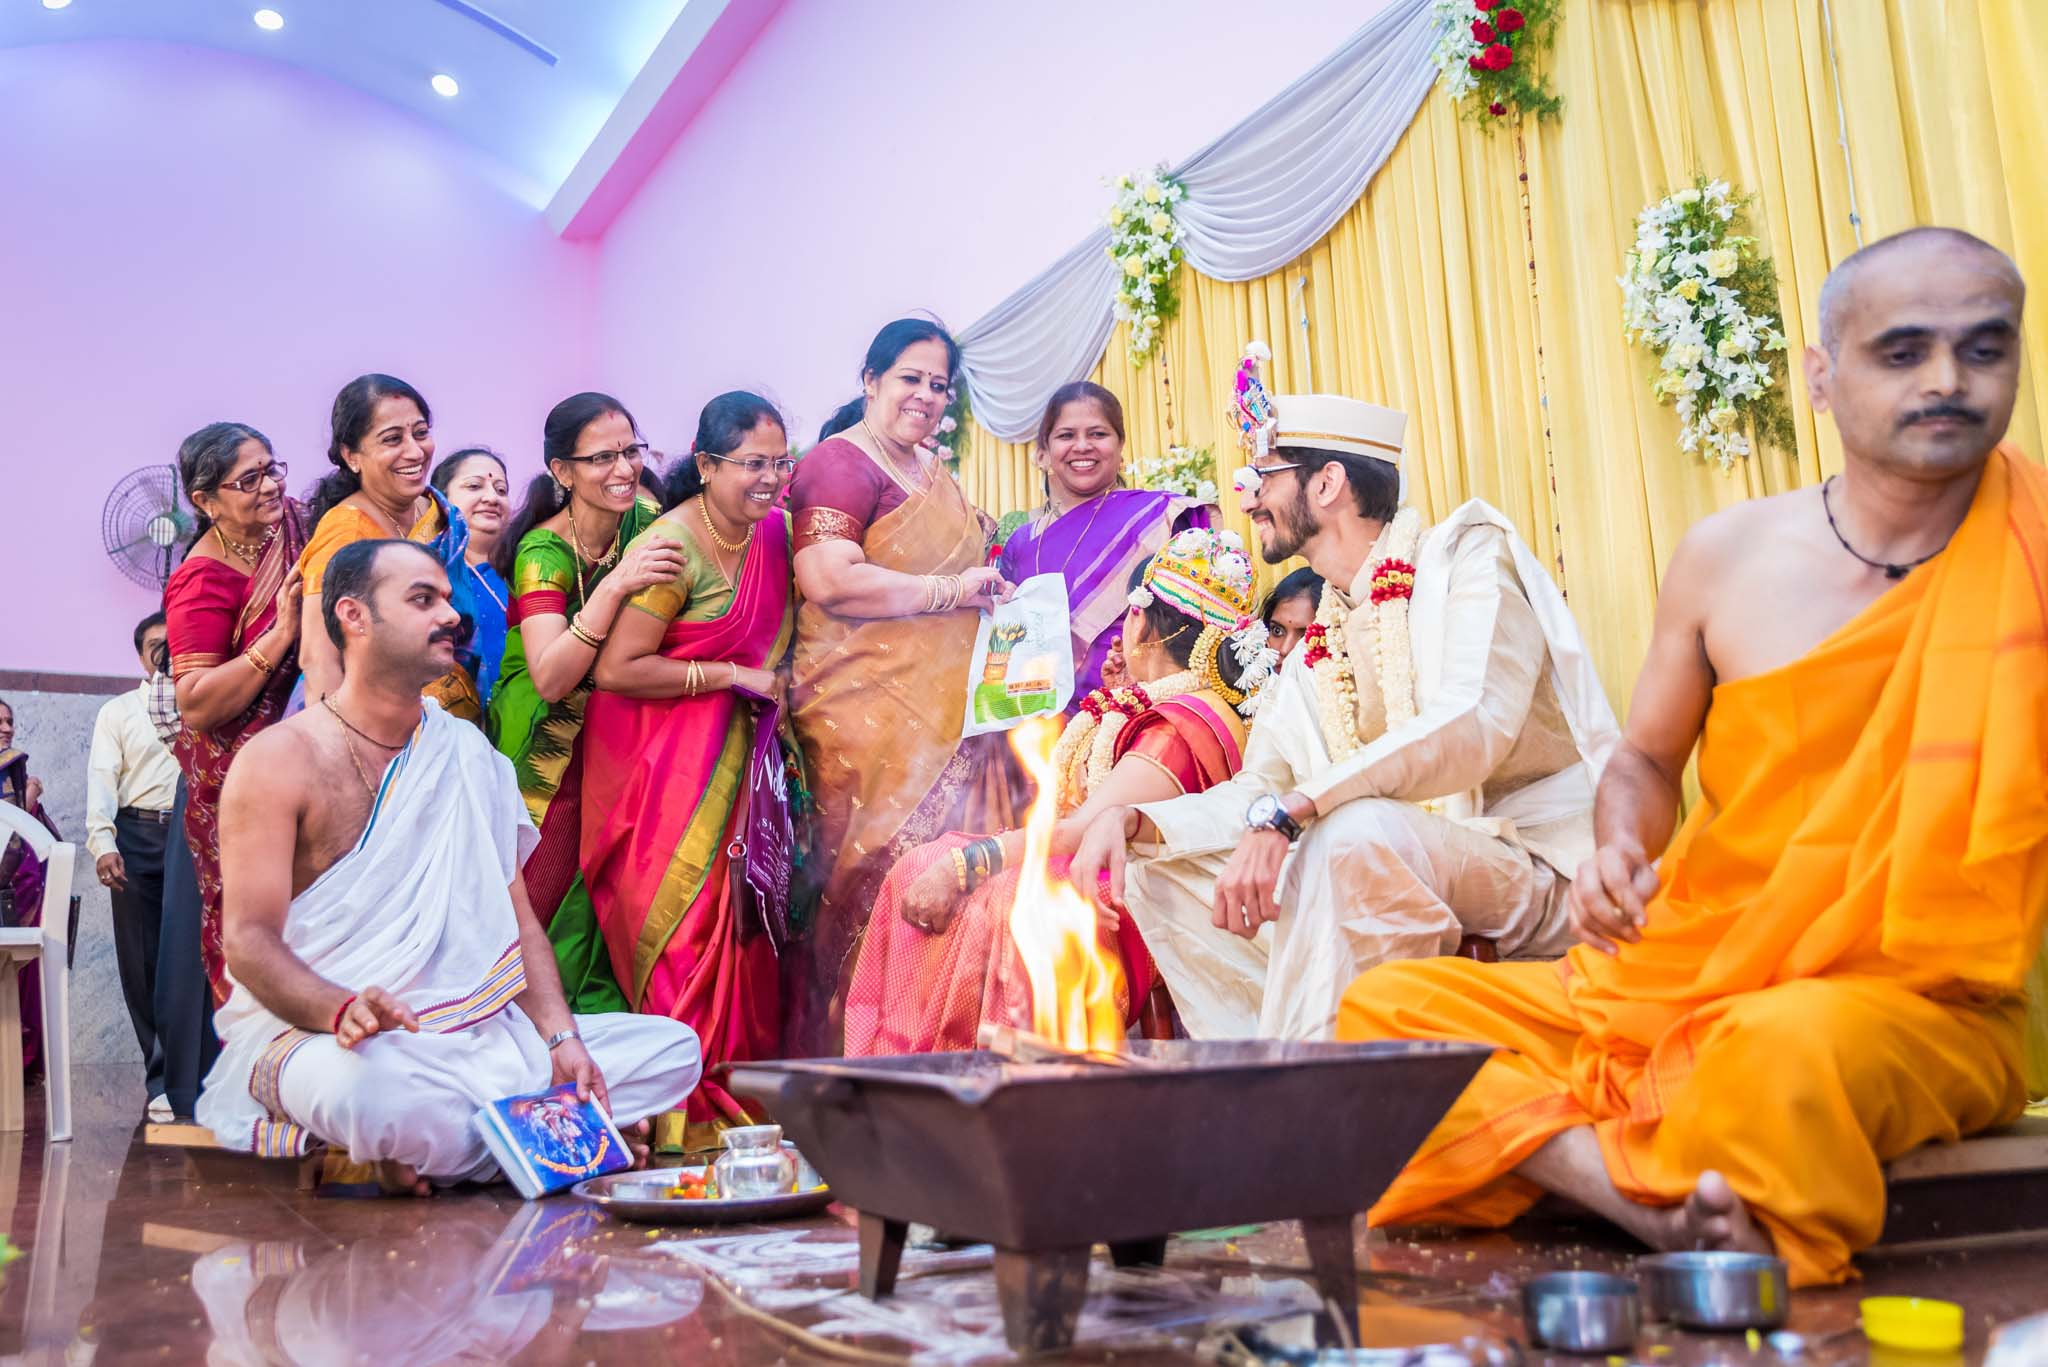 WhatKnot-Candid-Wedding-Photography-Mumbai-Bangalore-189